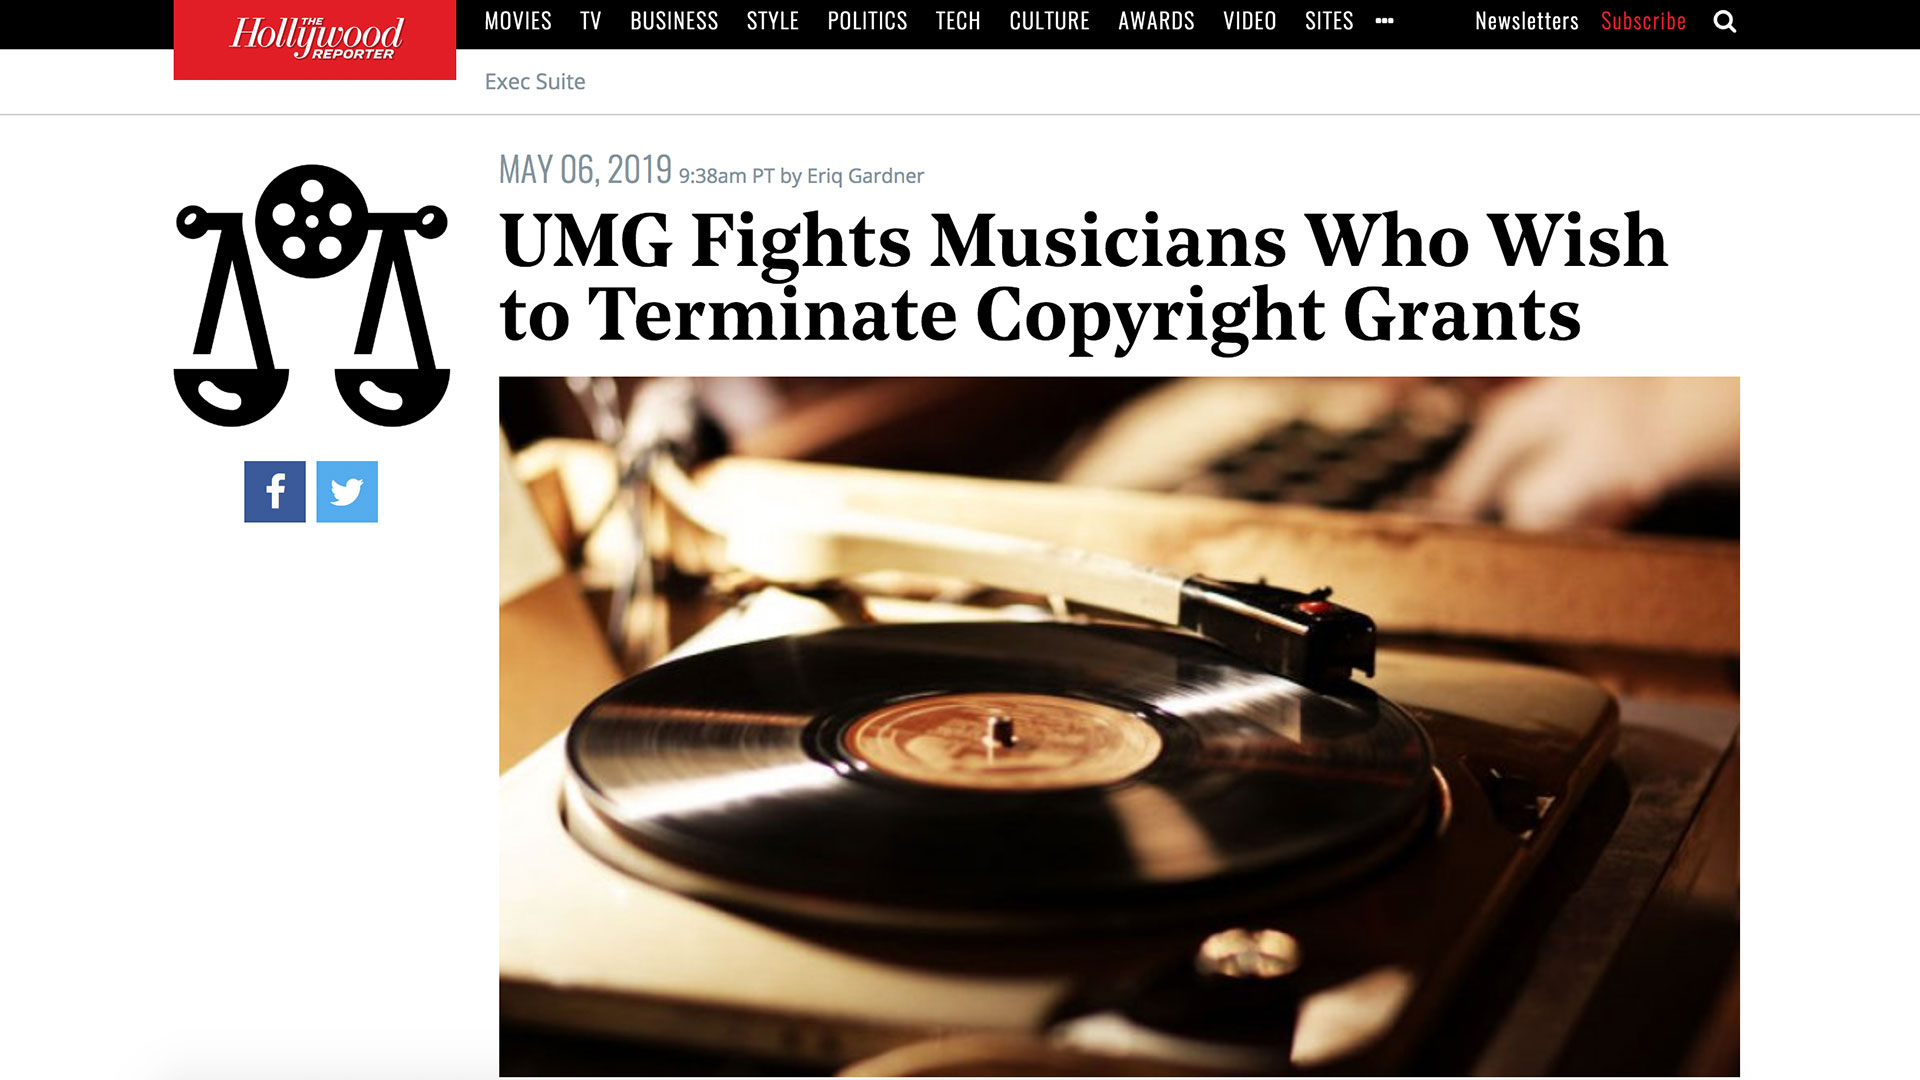 Fairness Rocks News UMG Fights Musicians Who Wish to Terminate Copyright Grants